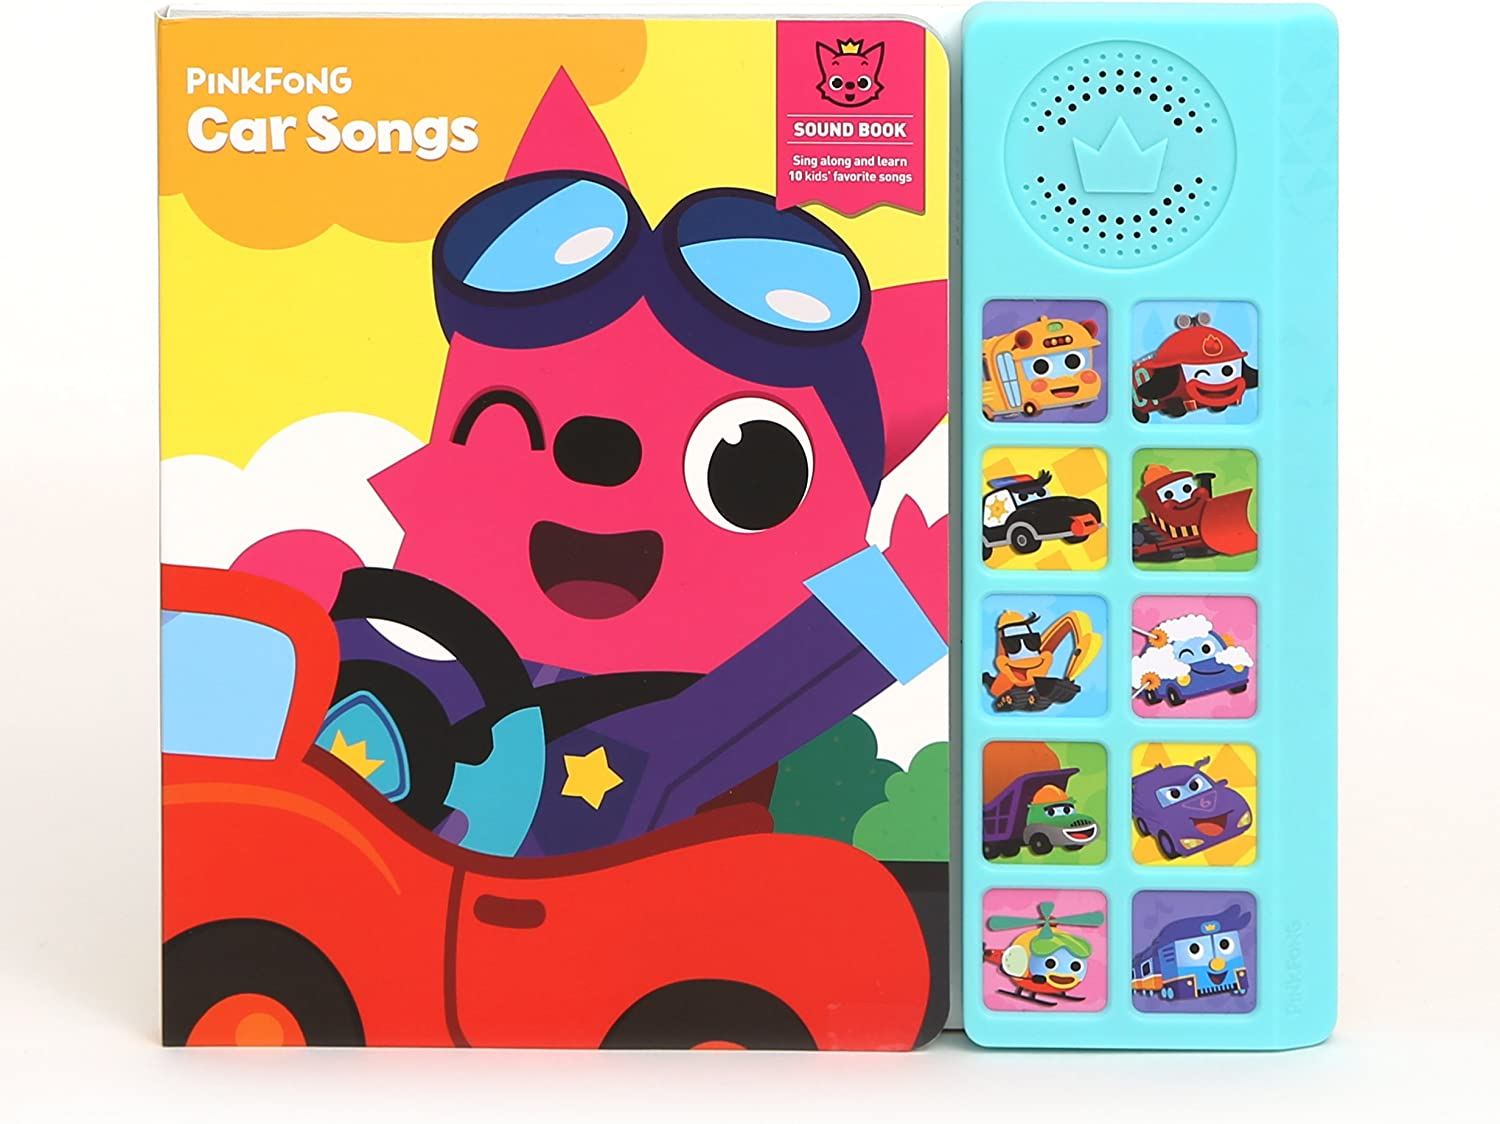 "Pinkfong Children's Car Songs Sound Book, 8.7"" x 7.8"", Yellow/SkyBlue"